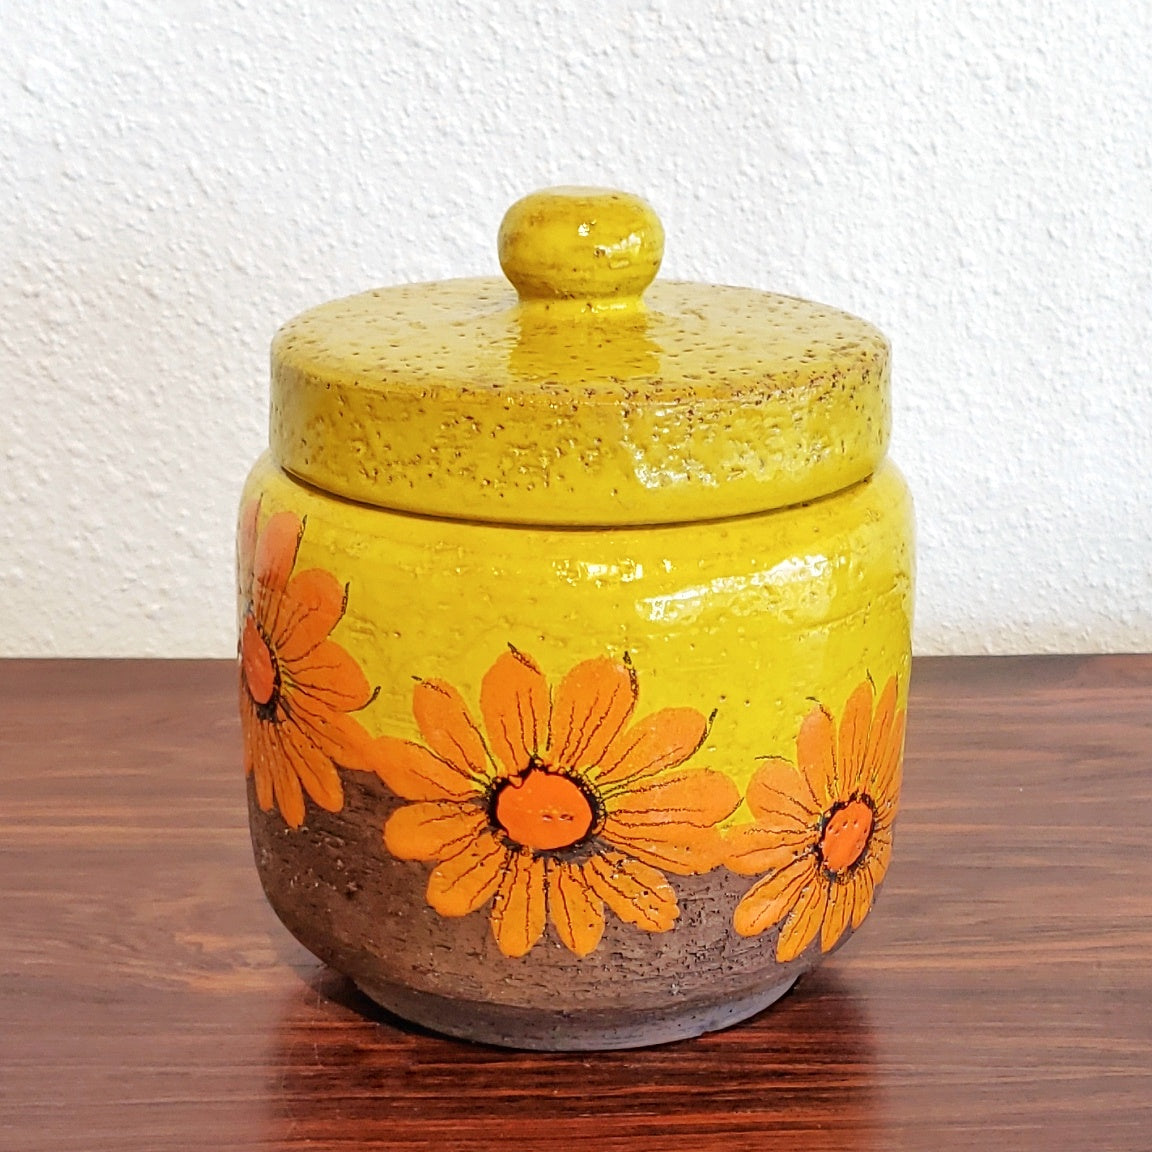 ALDO LONDI FLOWER POWER LIDDED JAR FOR BITOSSI